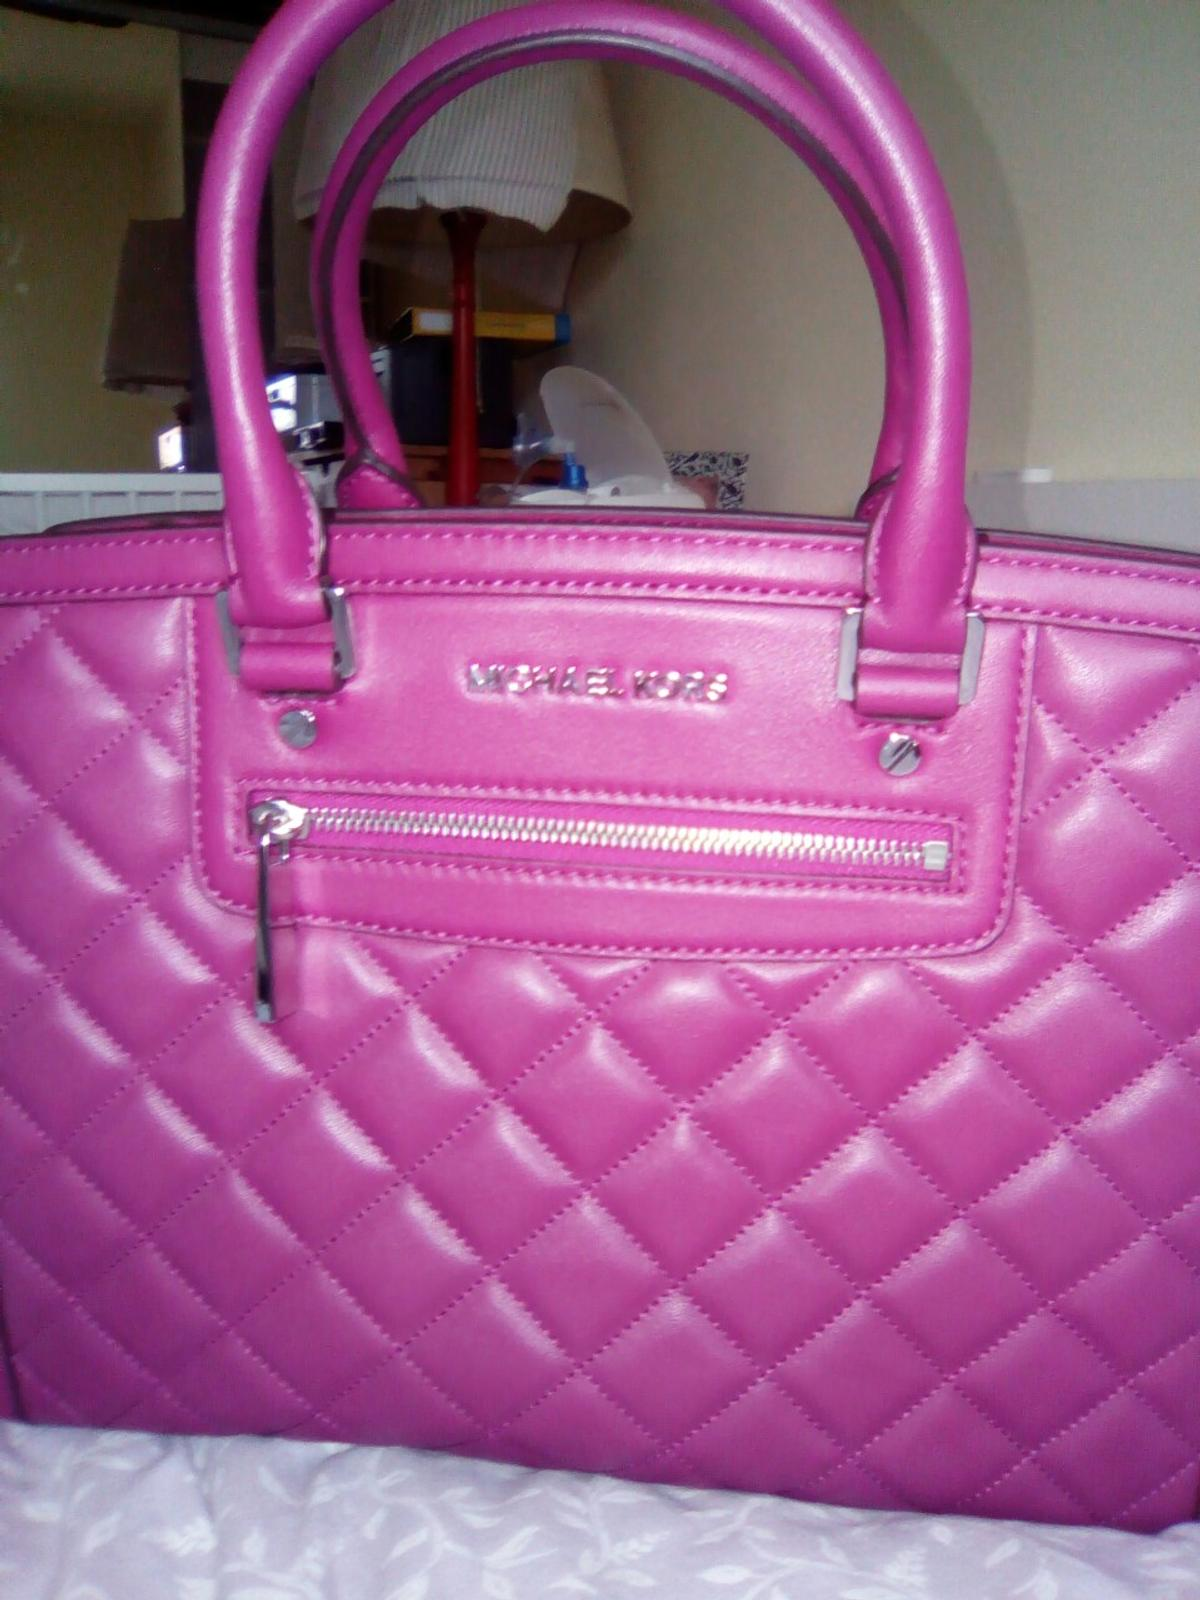 aa7c3597ae560 Michael Kors Selma in 2721 Bad Fischau for €250.00 for sale - Shpock